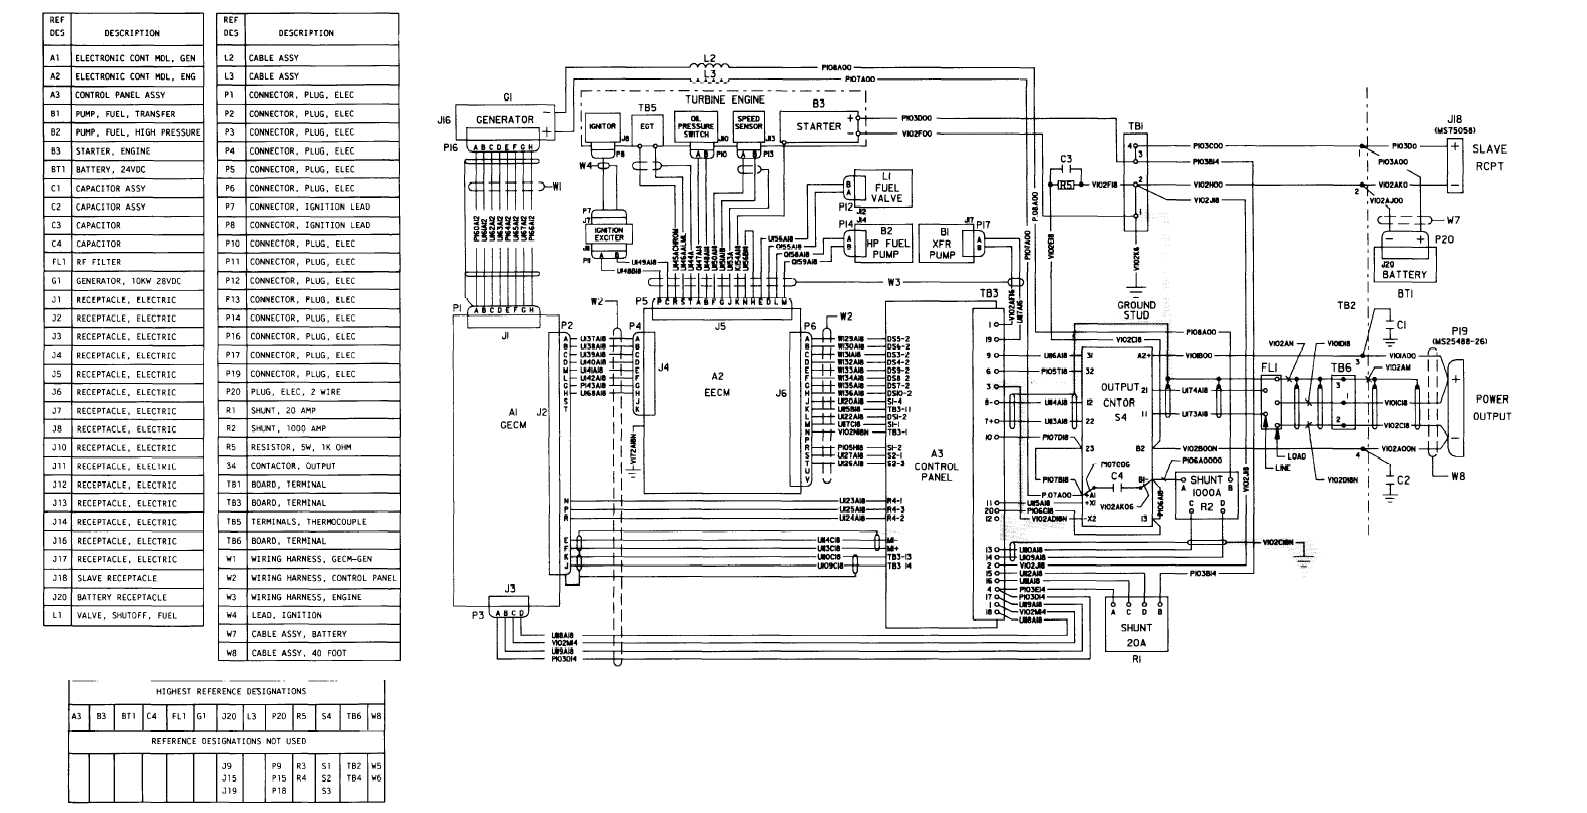 TM 5 6115 612 12_300_1 fo 3 generator set wiring diagram generator wiring diagrams at alyssarenee.co